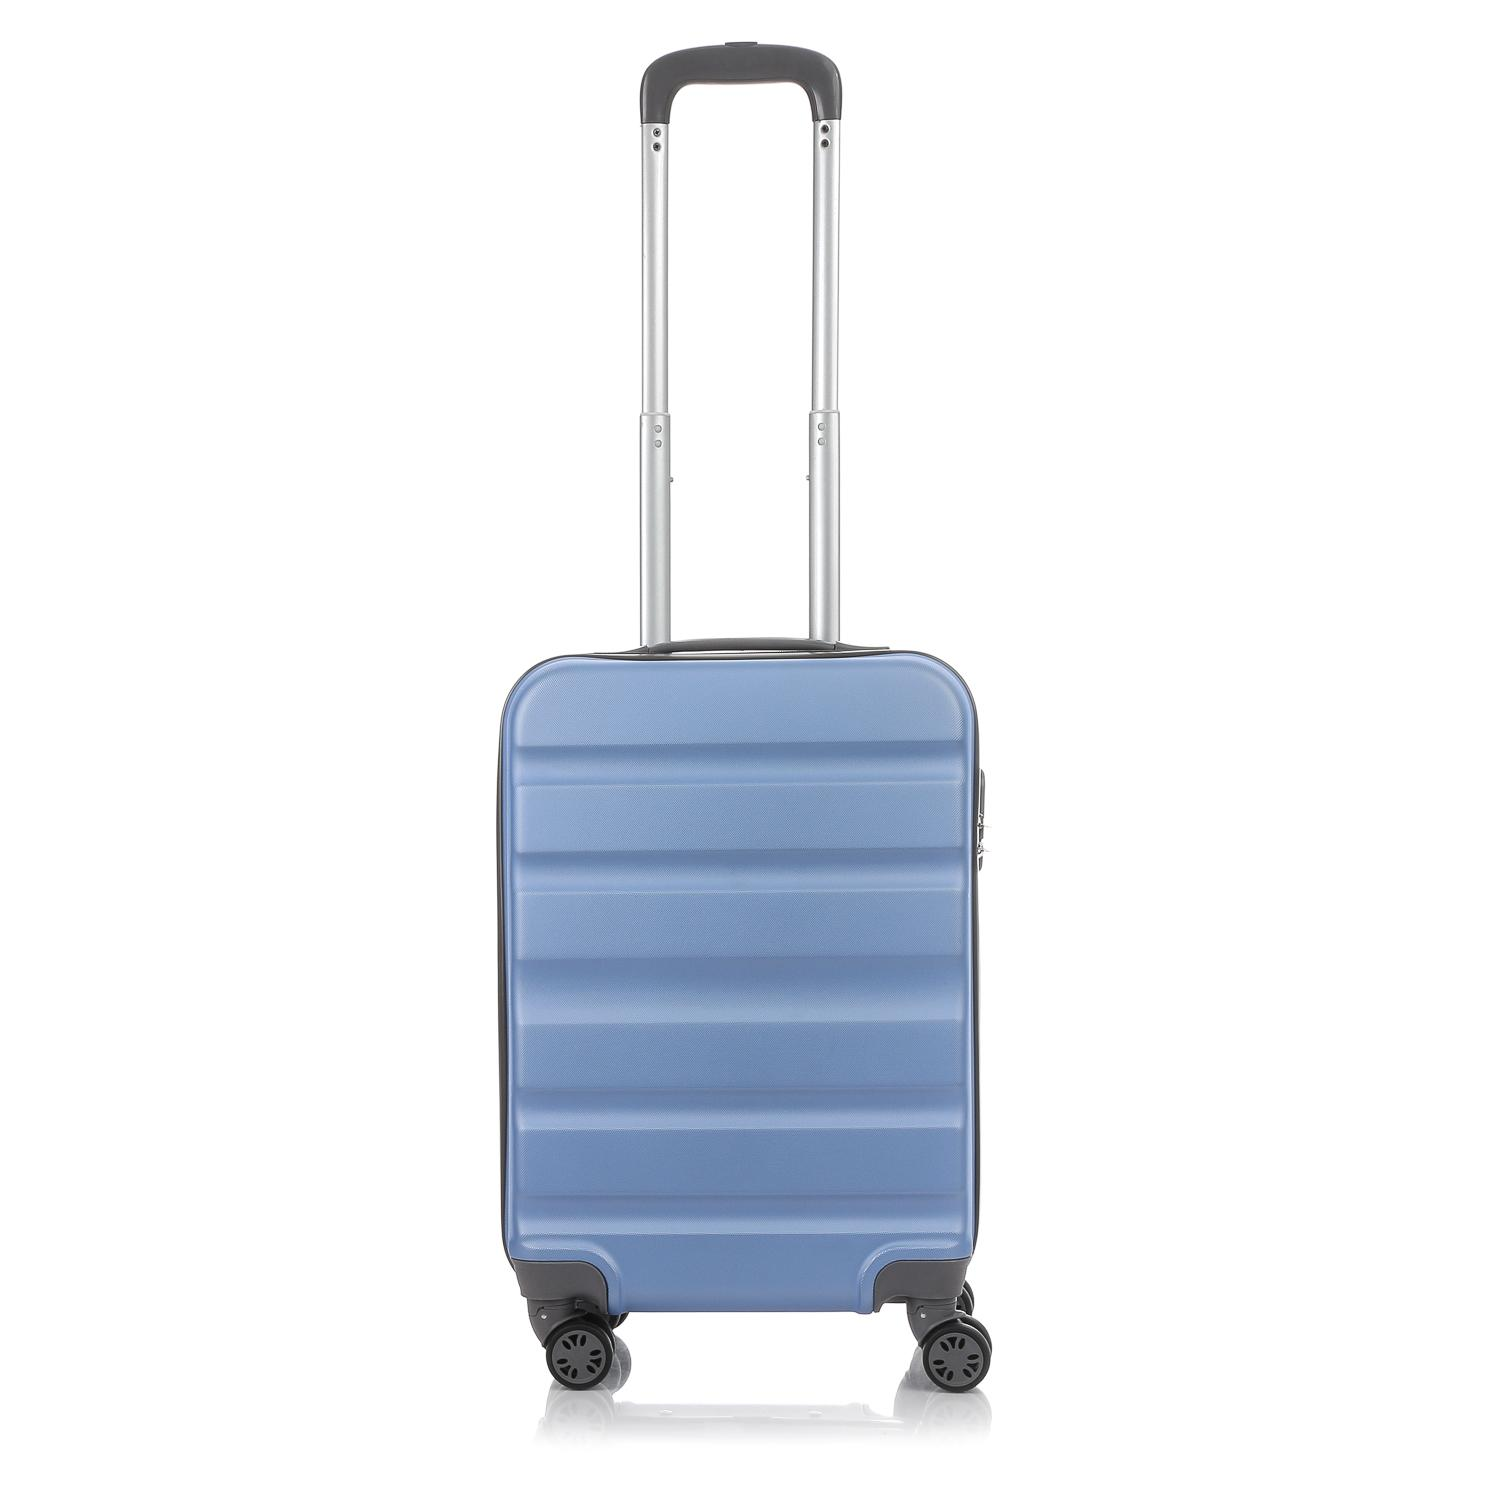 ff4253ac5 Luggage for sale - Luggage Bag online brands, prices & reviews in ...